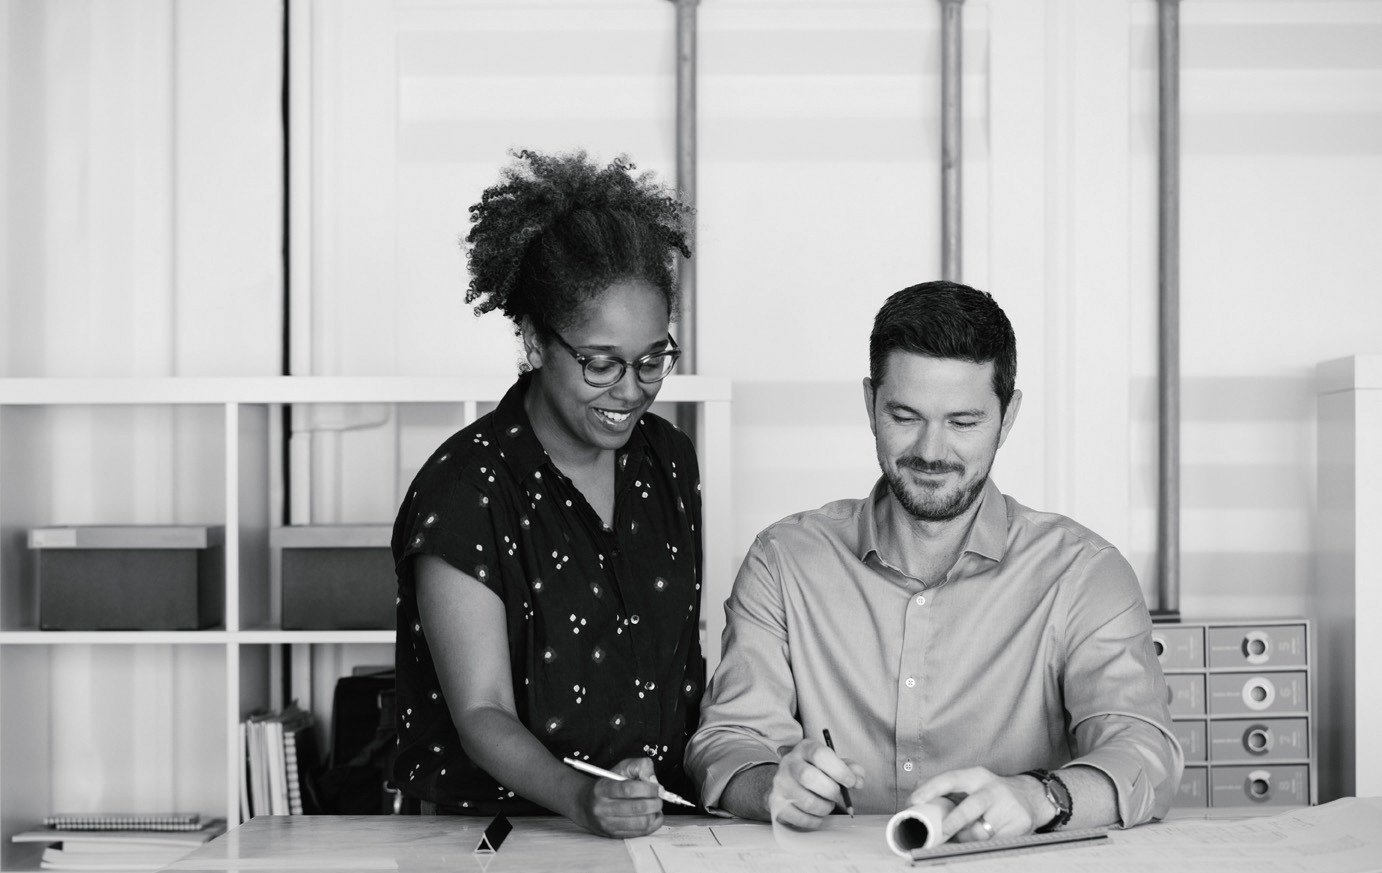 A woman and man drawing together at a desk